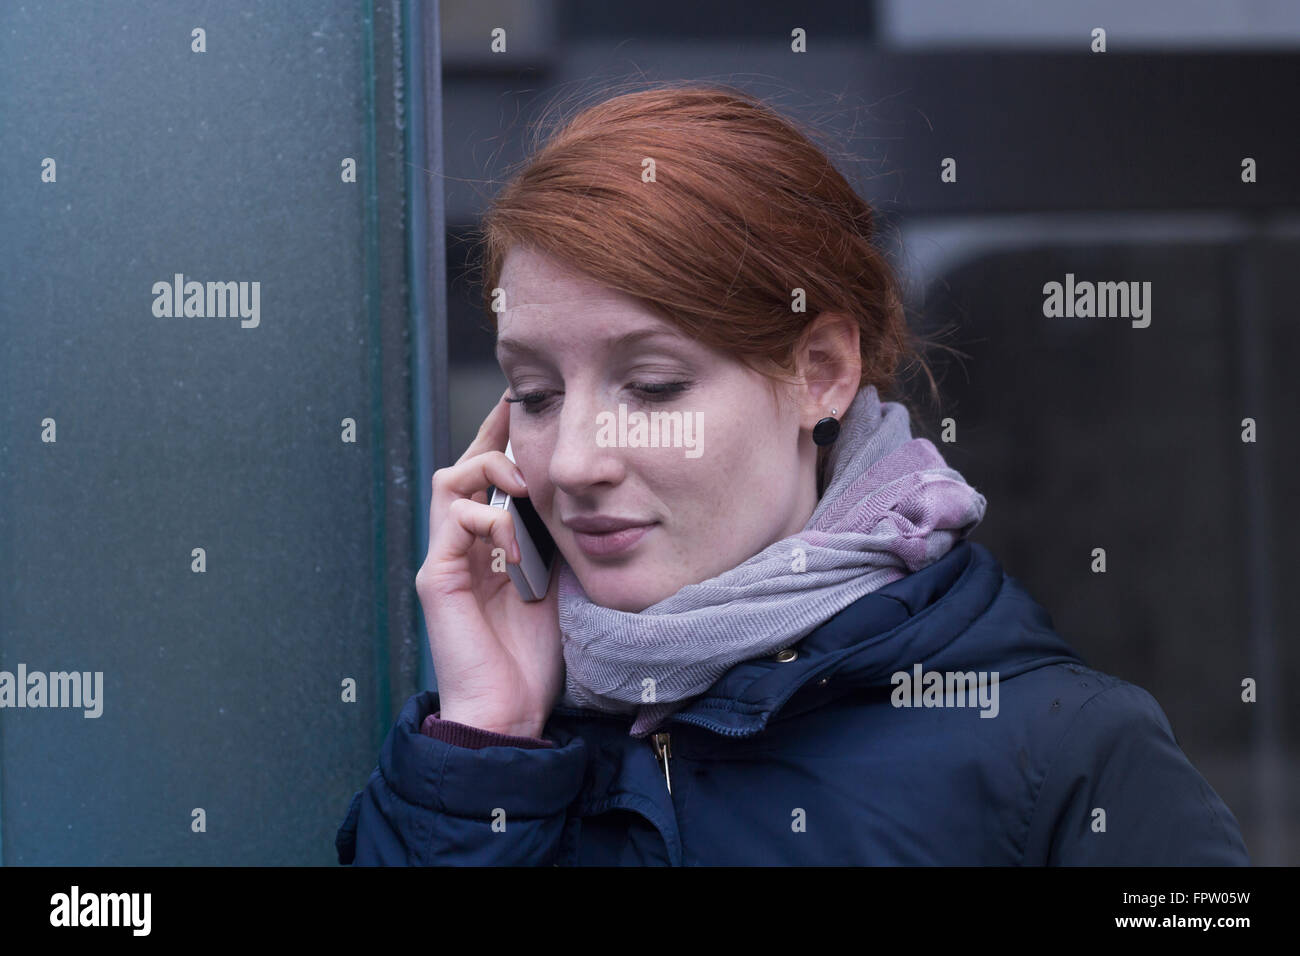 Young engineer talking on a mobile phone near switchgear in an industry, Freiburg im Breisgau, Baden-Württemberg, Stock Photo